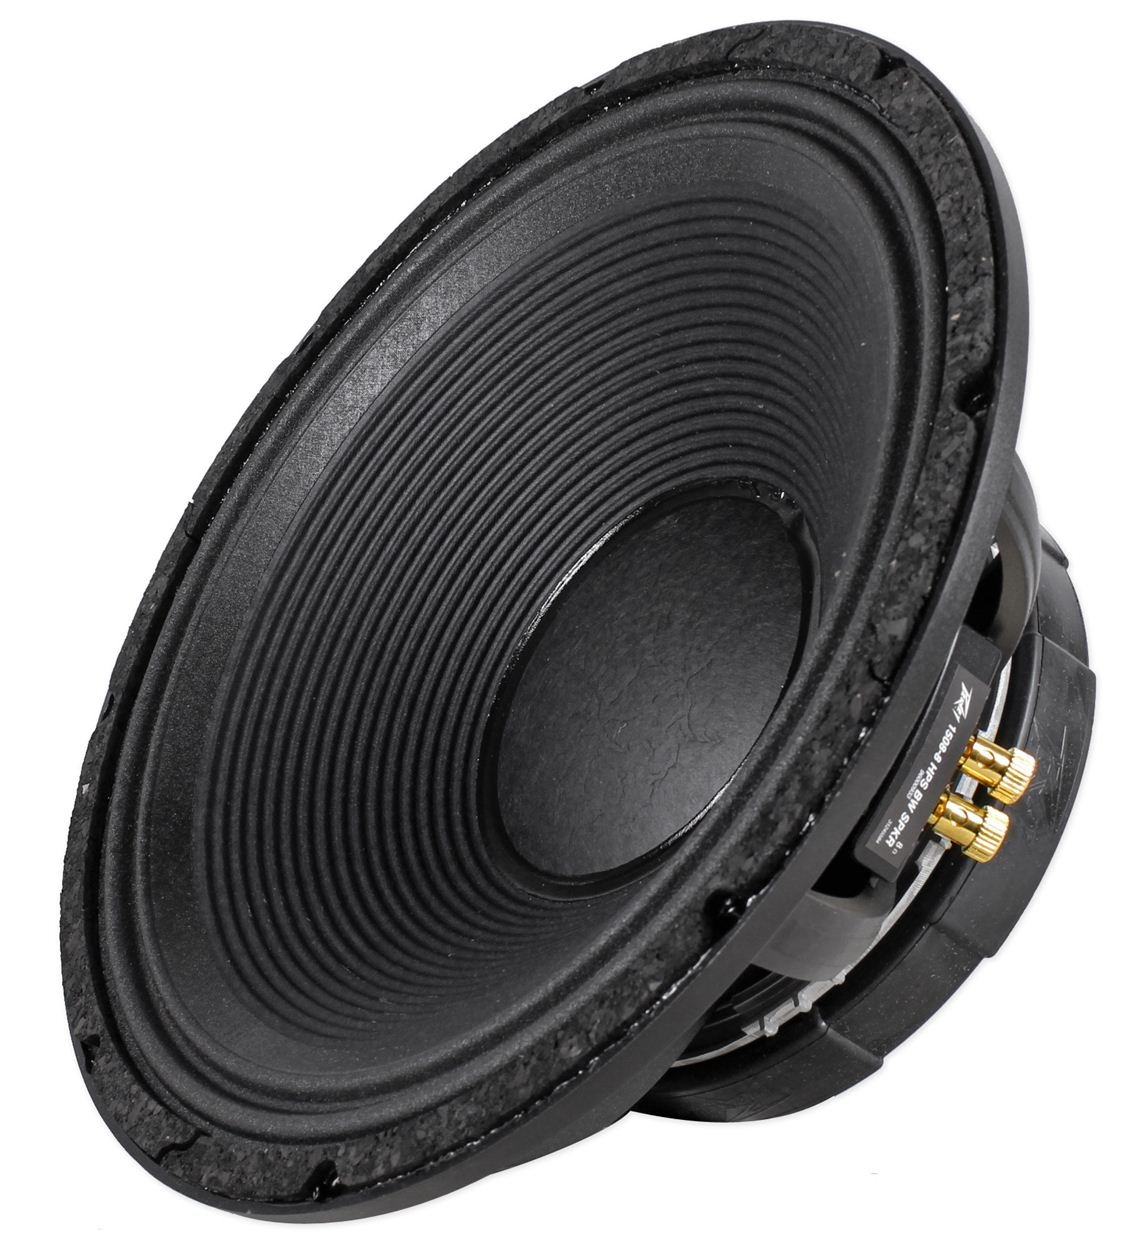 """Peavey 15"""" 8 Ohm 3200 Watt Peak/800 Watt RMS Low Rider Pro Audio Subwoofer Raw Driver with Extra-Long Cone Excursion"""